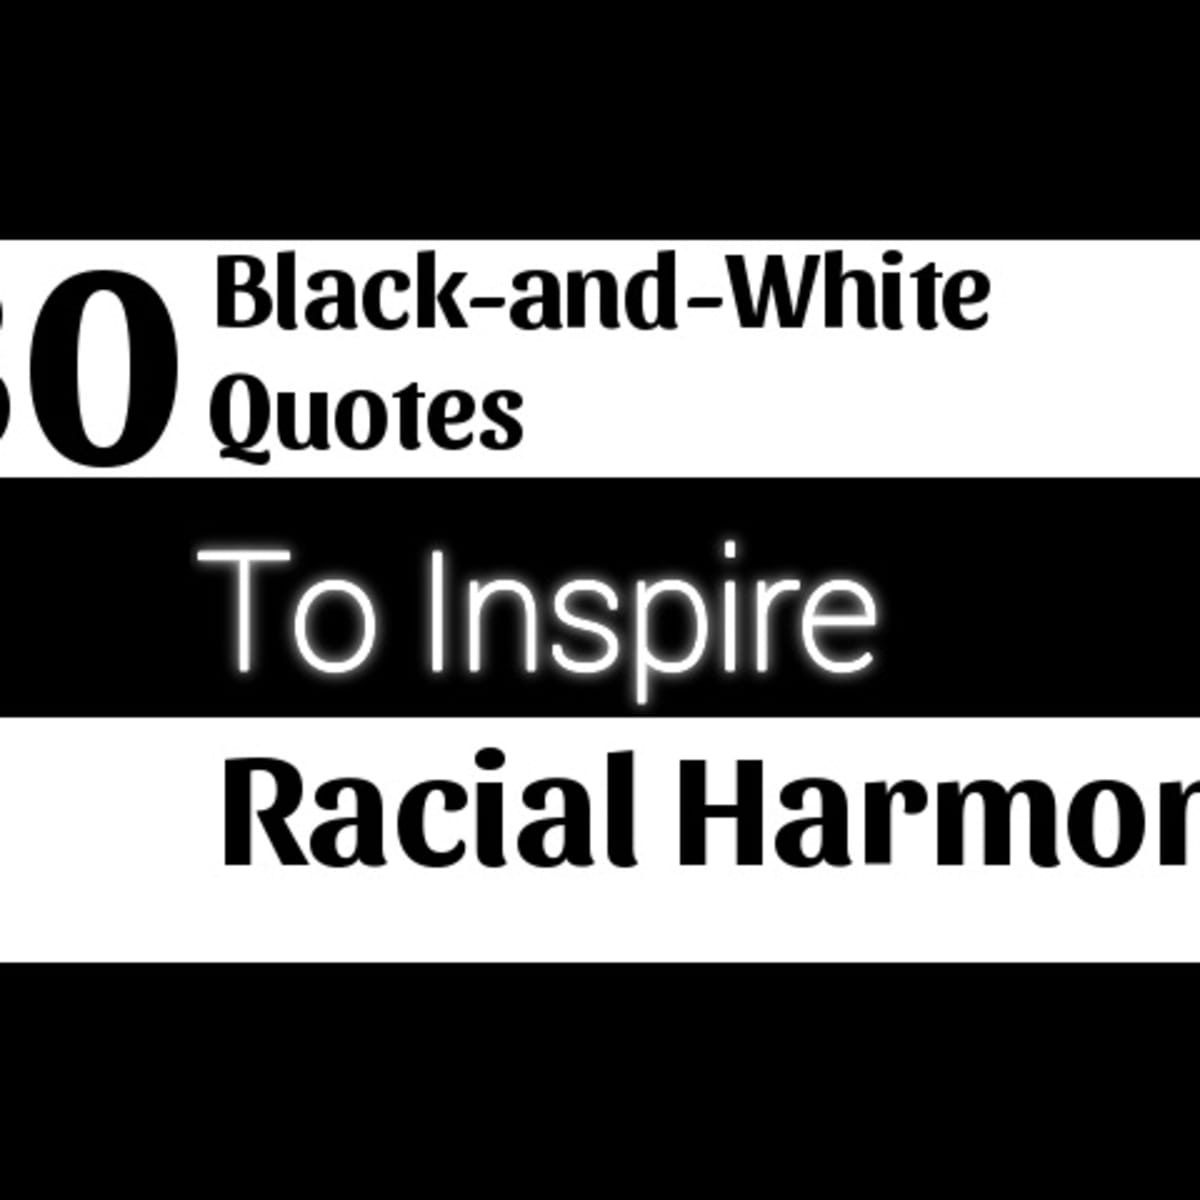 30 Black And White Quotes To Inspire Racial Harmony Holidappy Celebrations